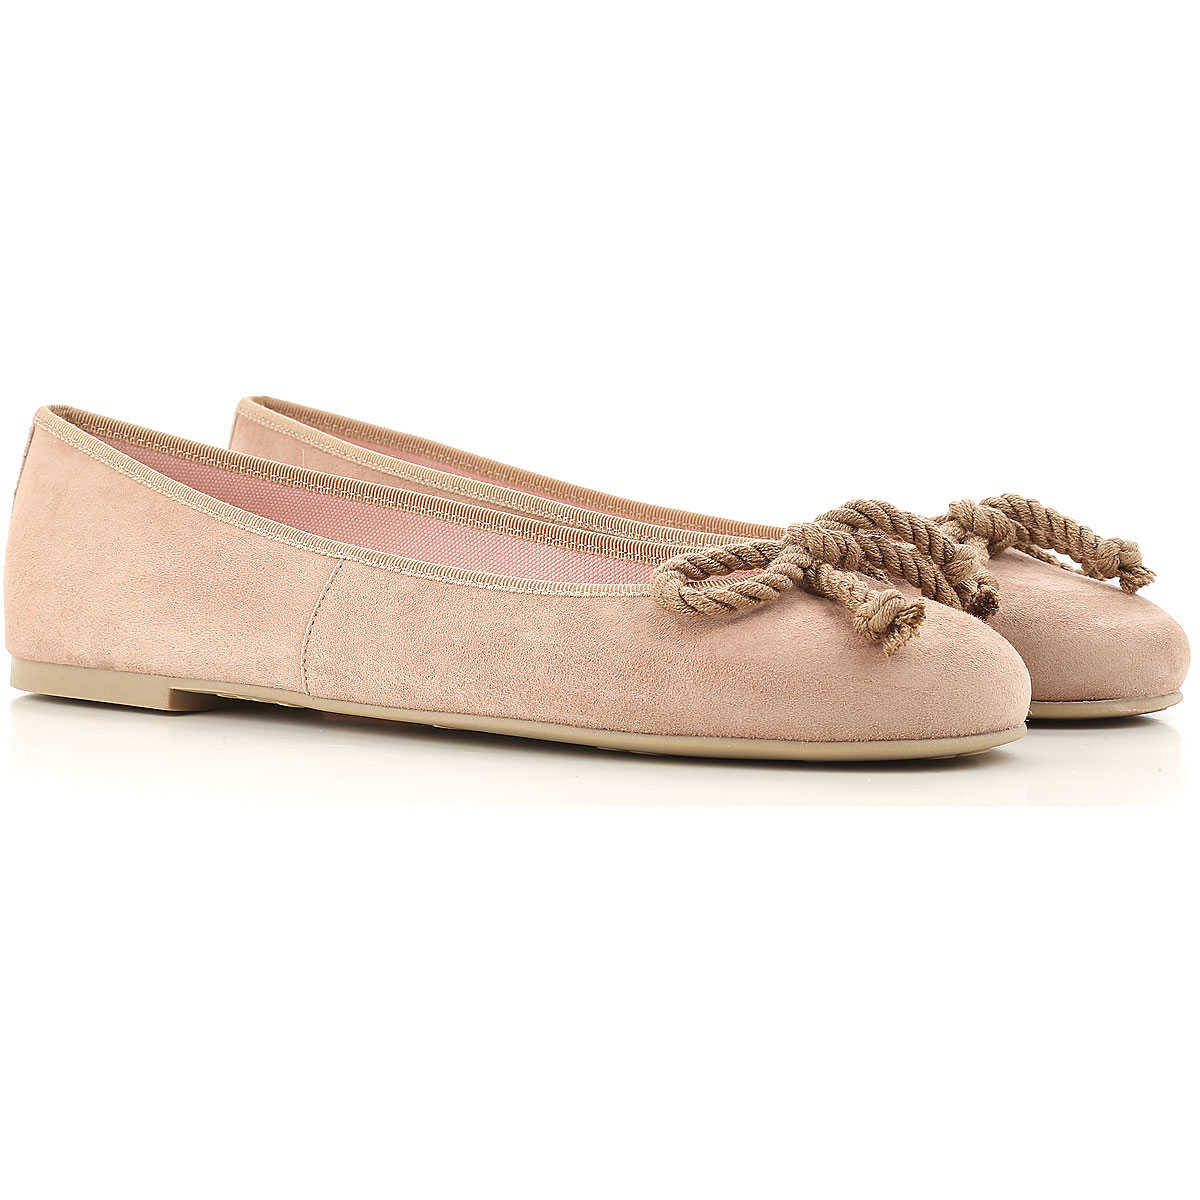 Pretty Ballerinas Ballet Flats Ballerina Shoes for Women On Sale Dark Beige SE - GOOFASH